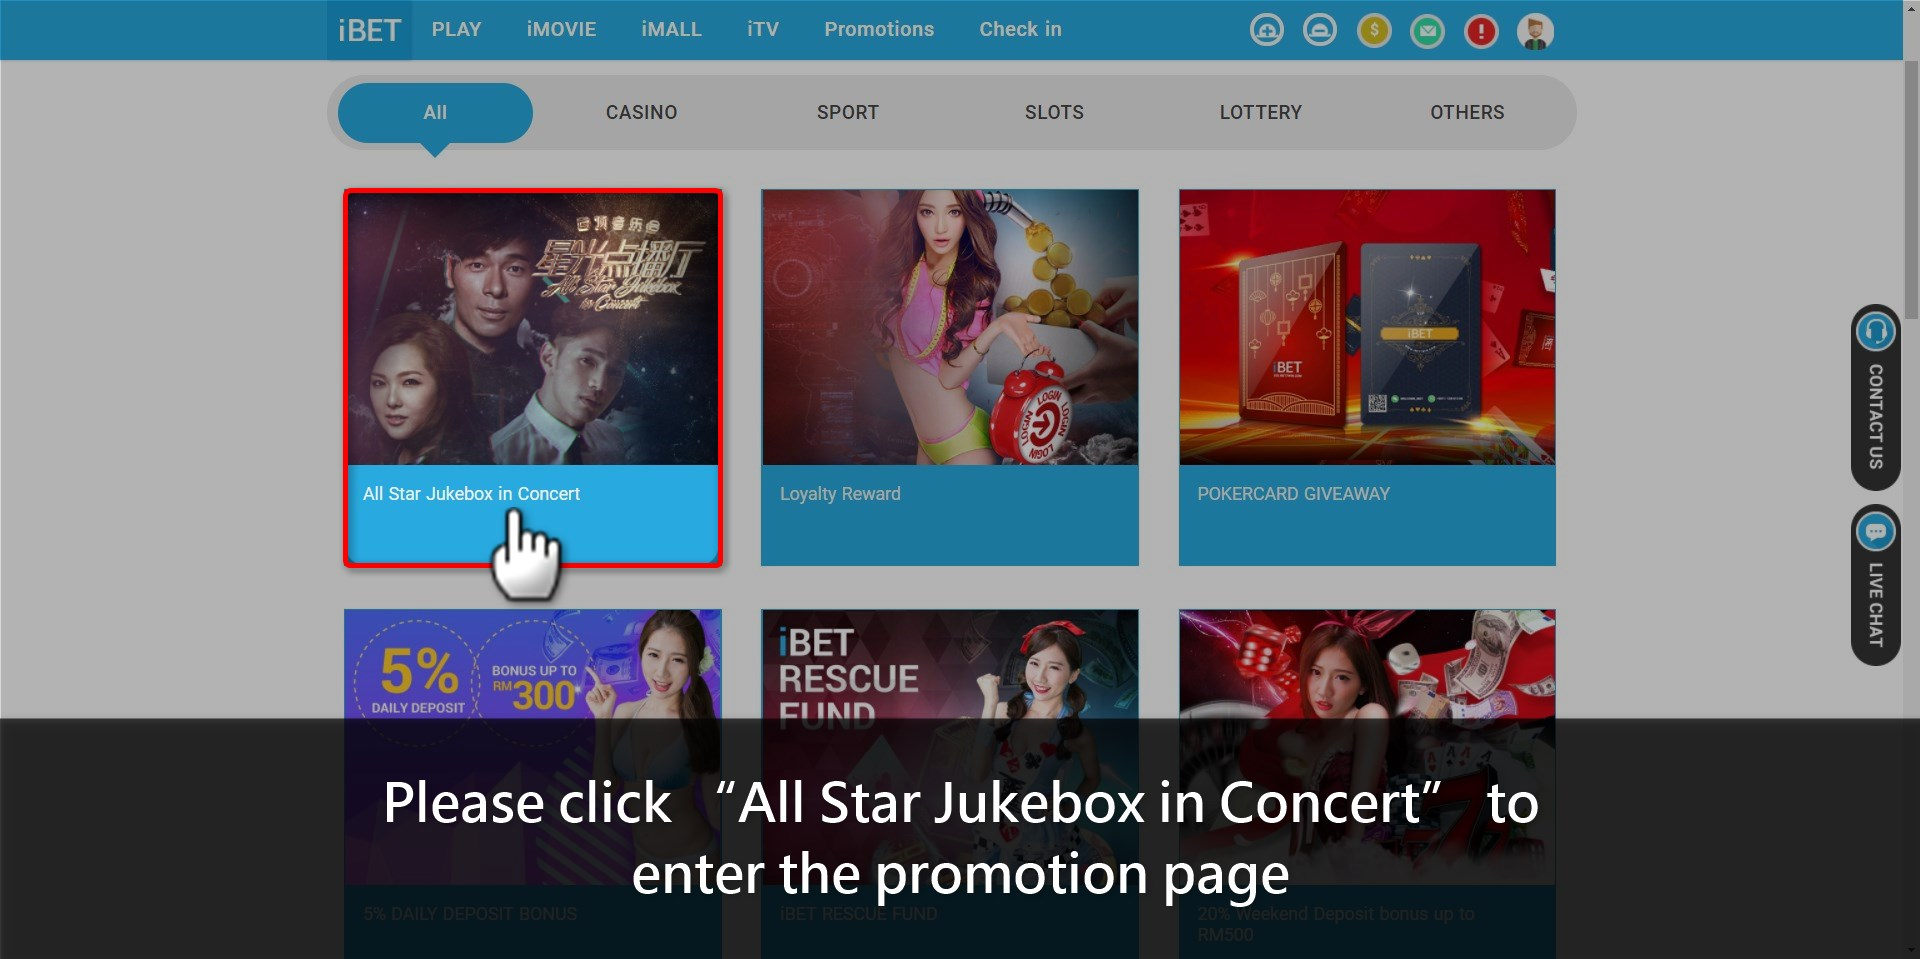 Teach you how to claim iBET All Star Jukebox